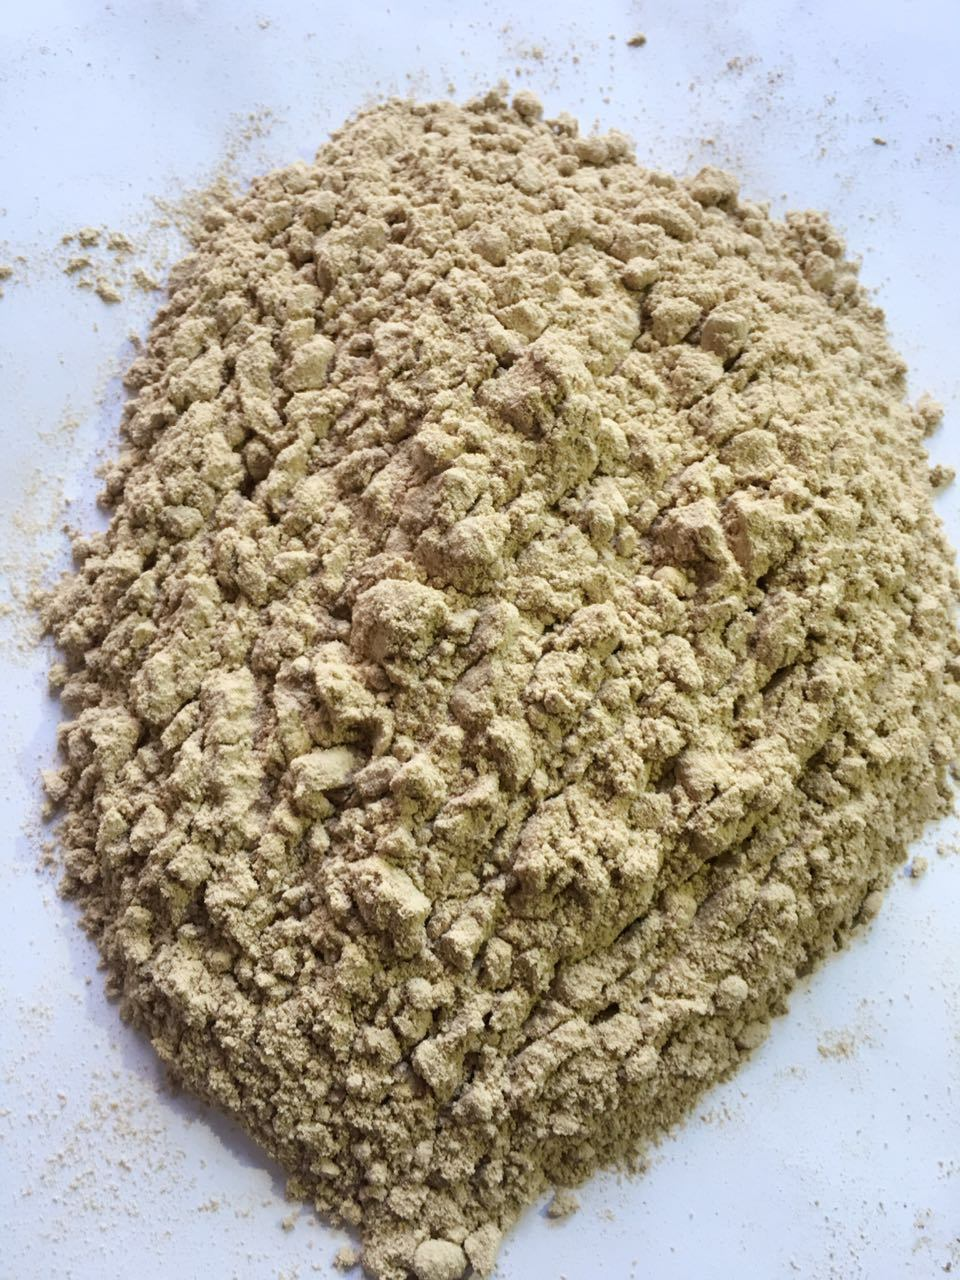 High Procent Amino Acid Powder 80% Foliar and Soil Fertilizer